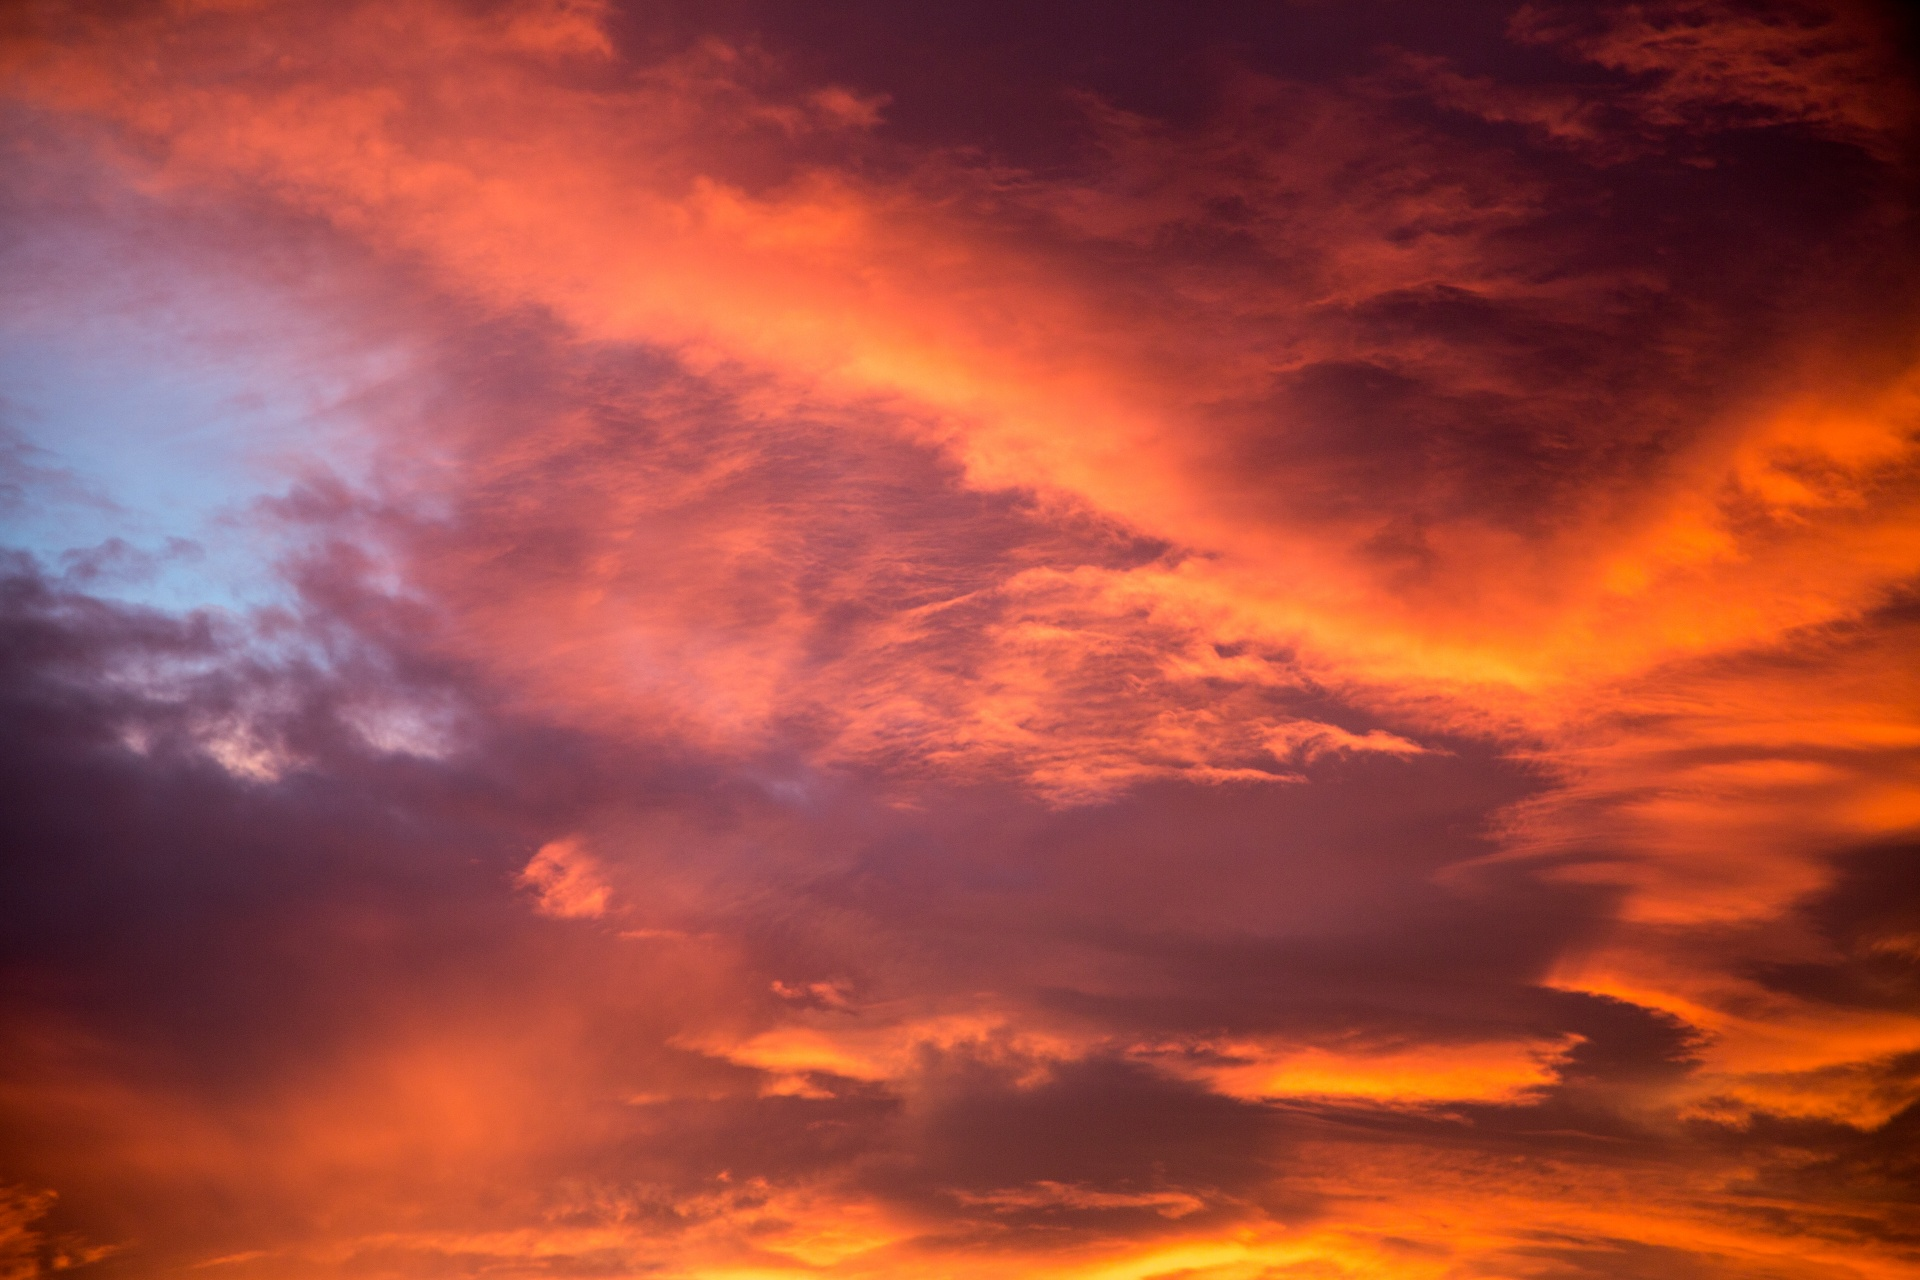 Sunset Sky Free Stock Photo - Public Domain Pictures